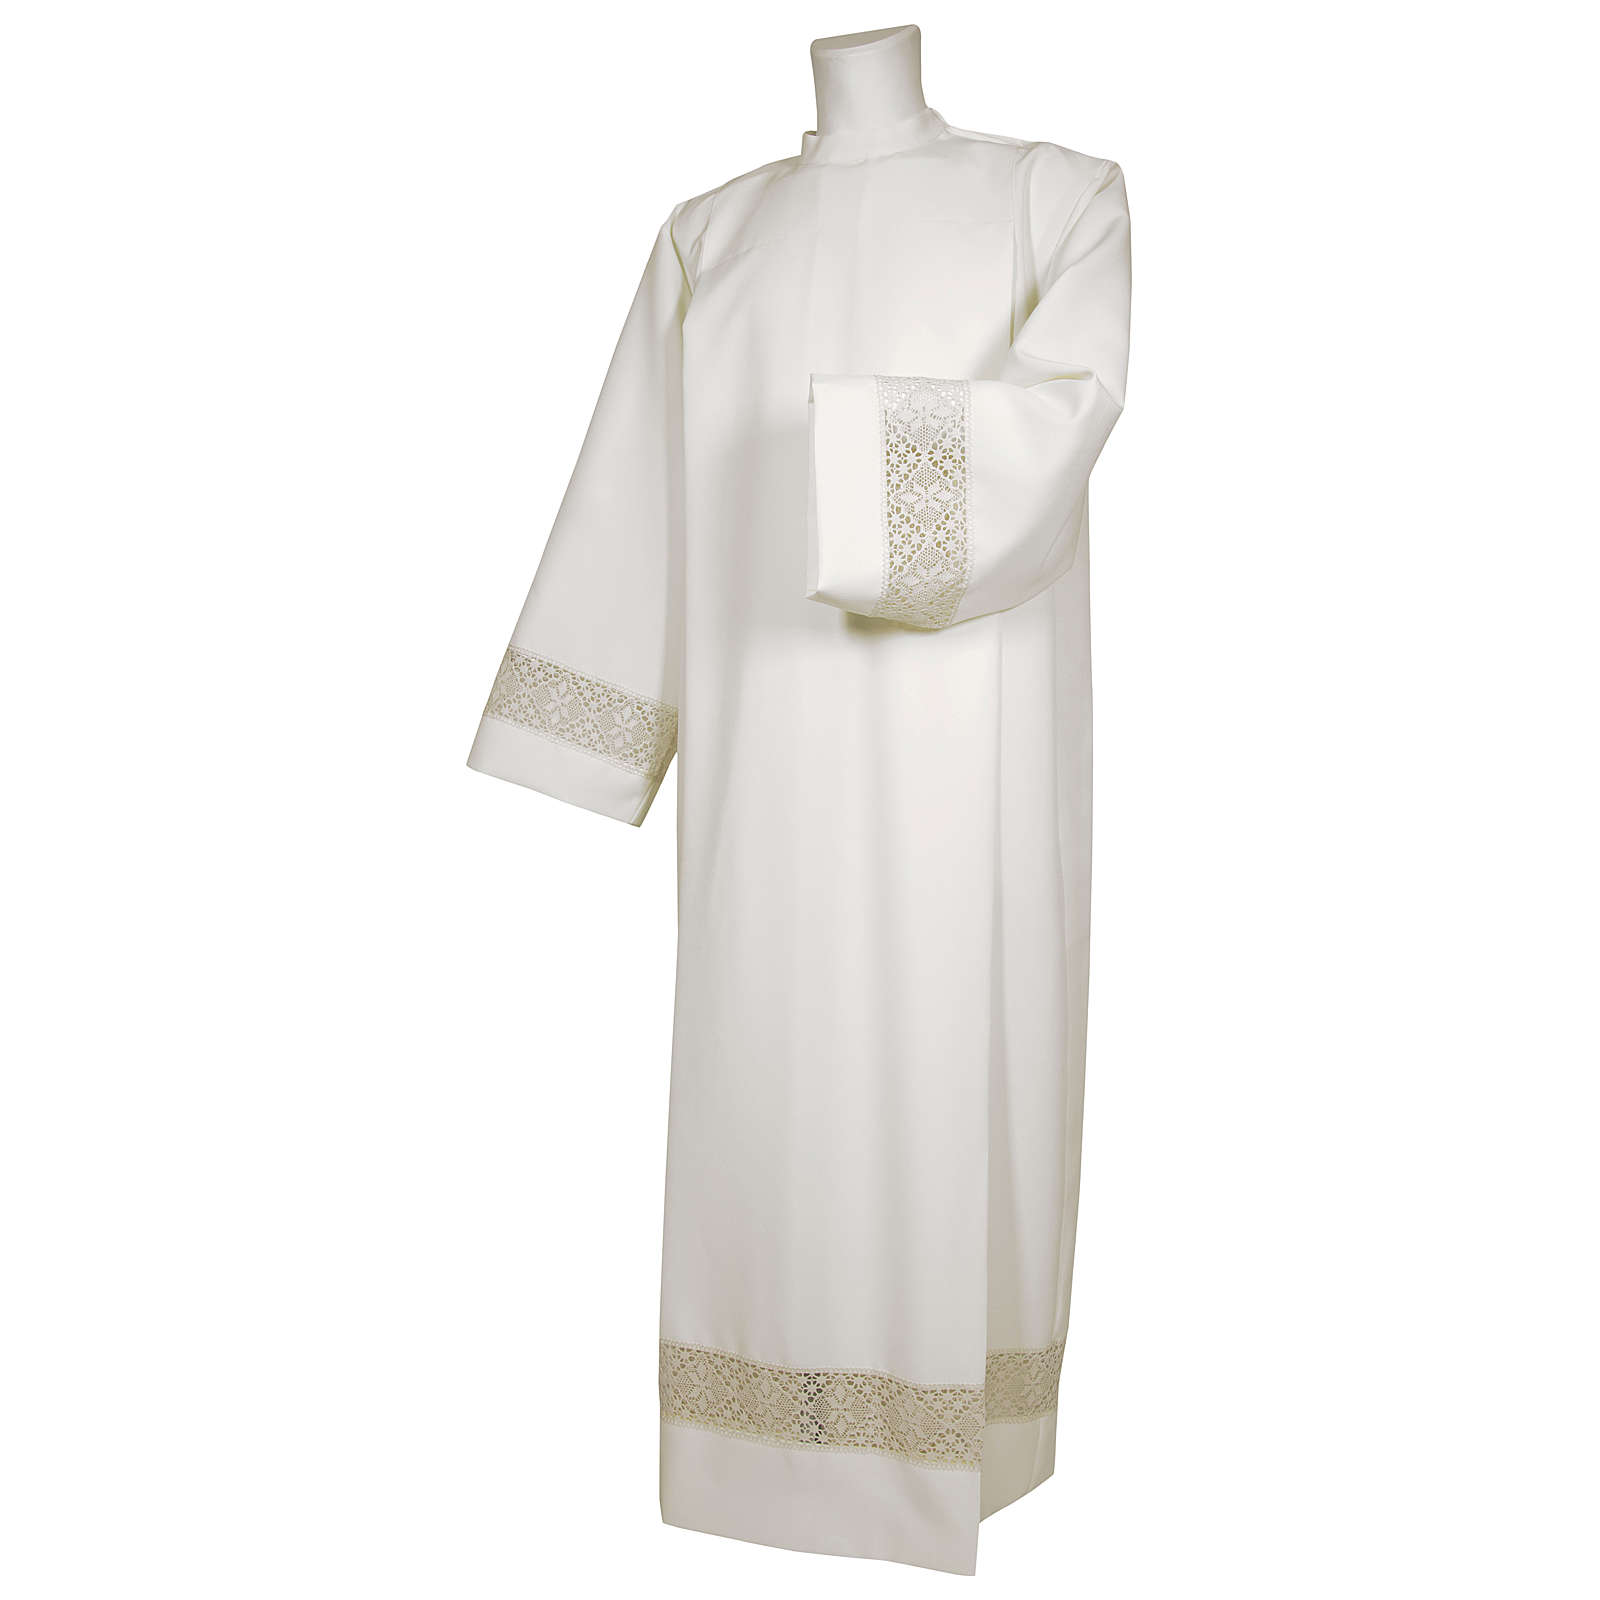 Priest alb with front zipper 65% polyester 35% cotton with decoration on the sleeve and lace and crochet partition 4